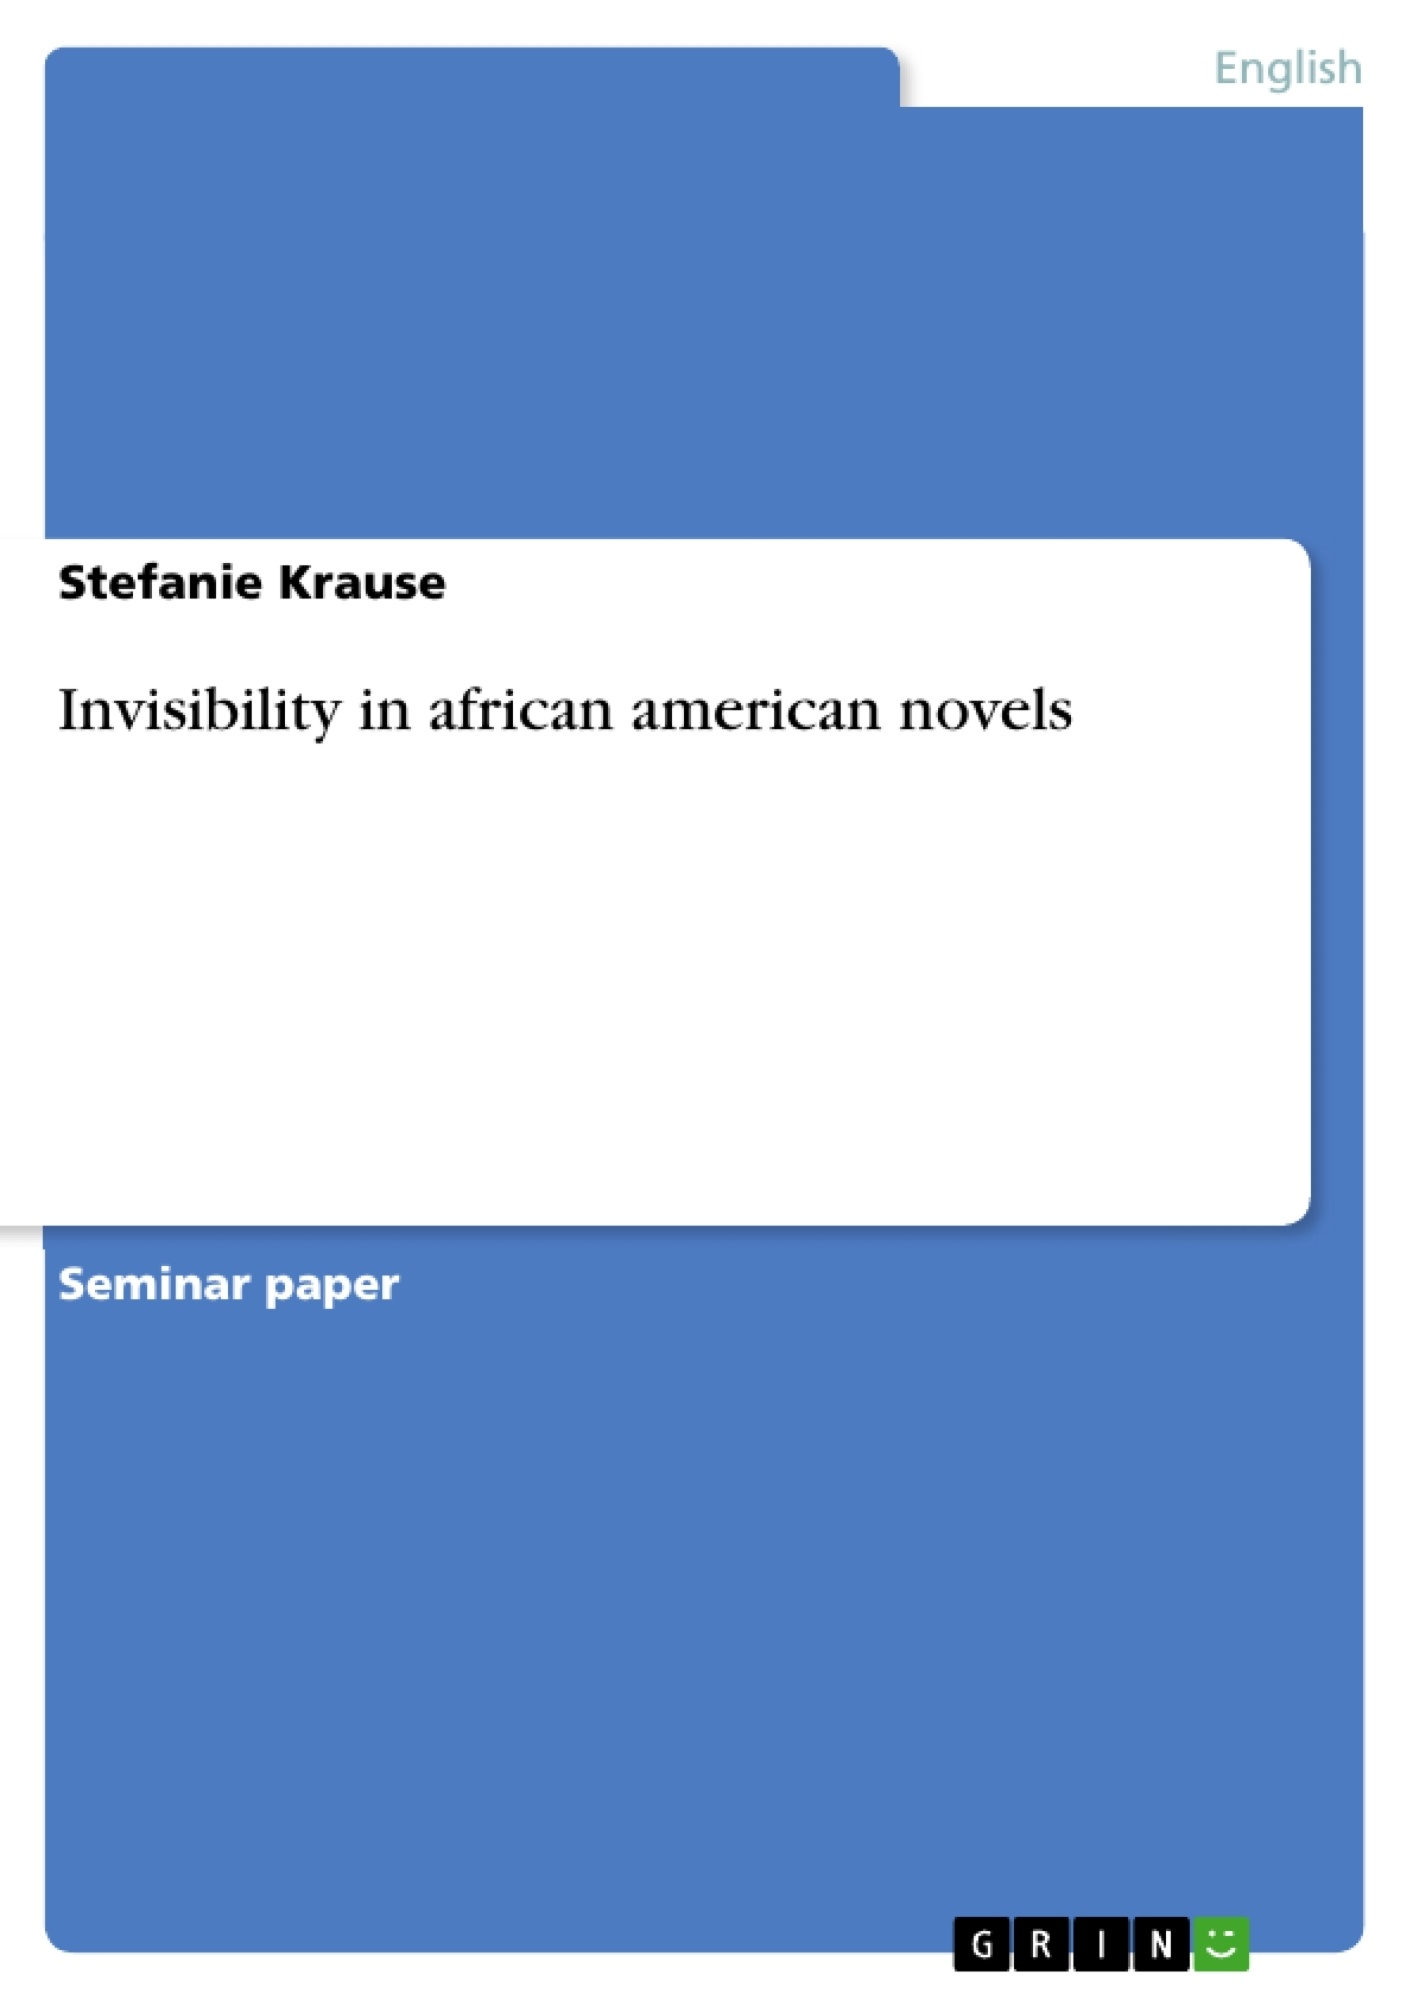 Title: Invisibility in african american novels